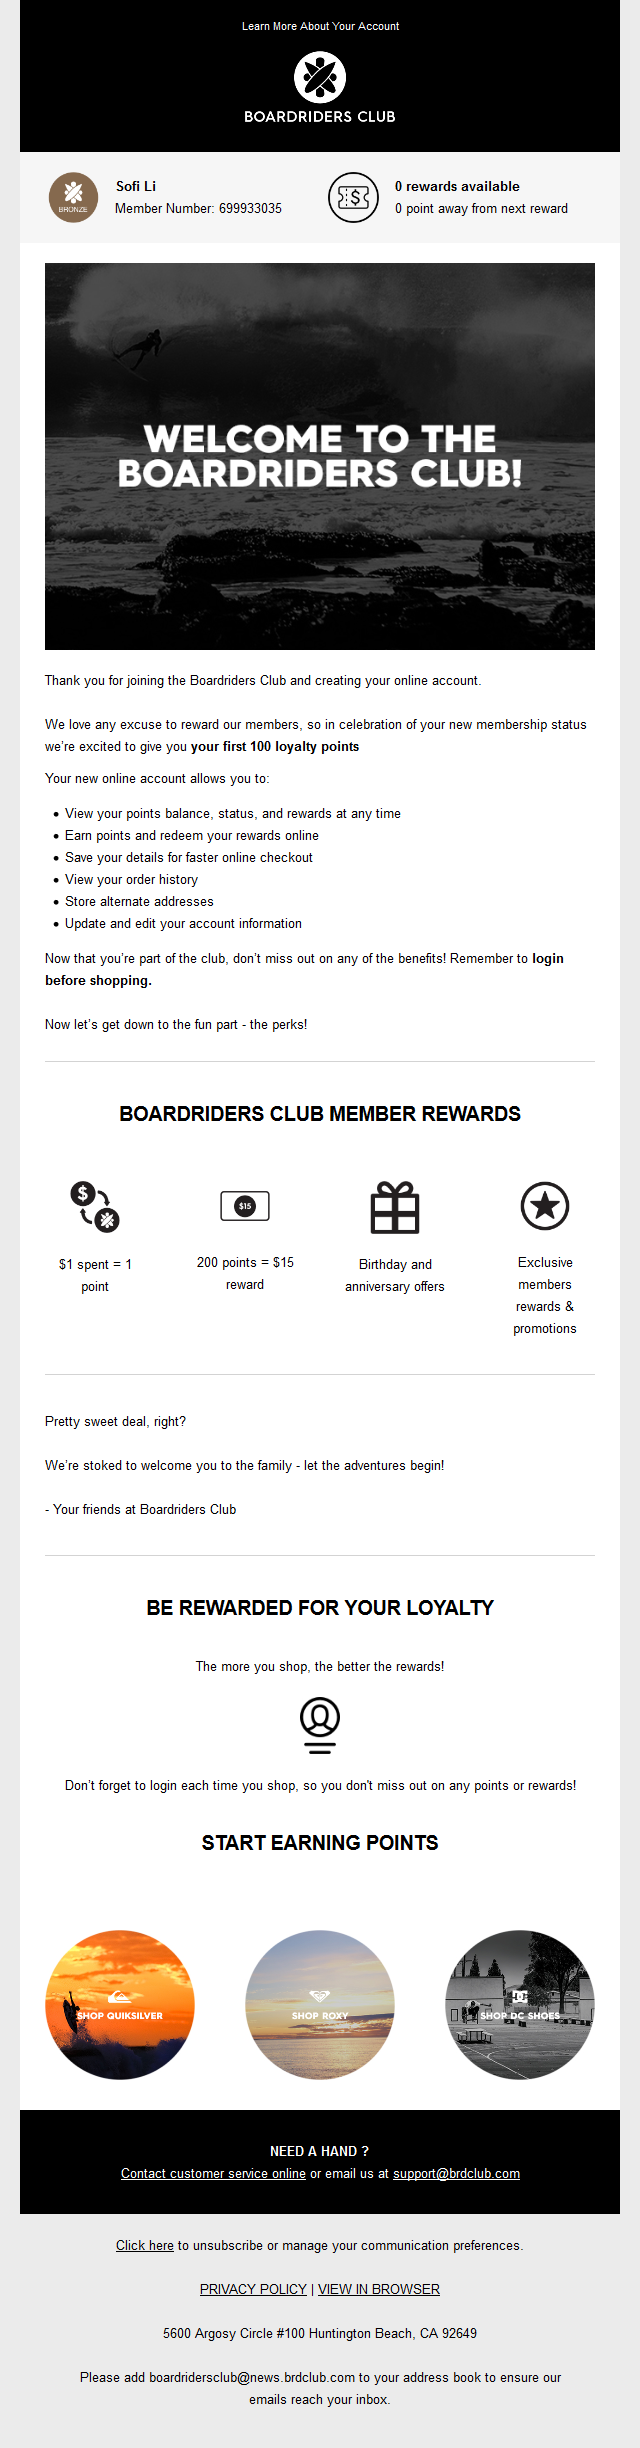 Welcome To The Boardriders Club By Quiksilver